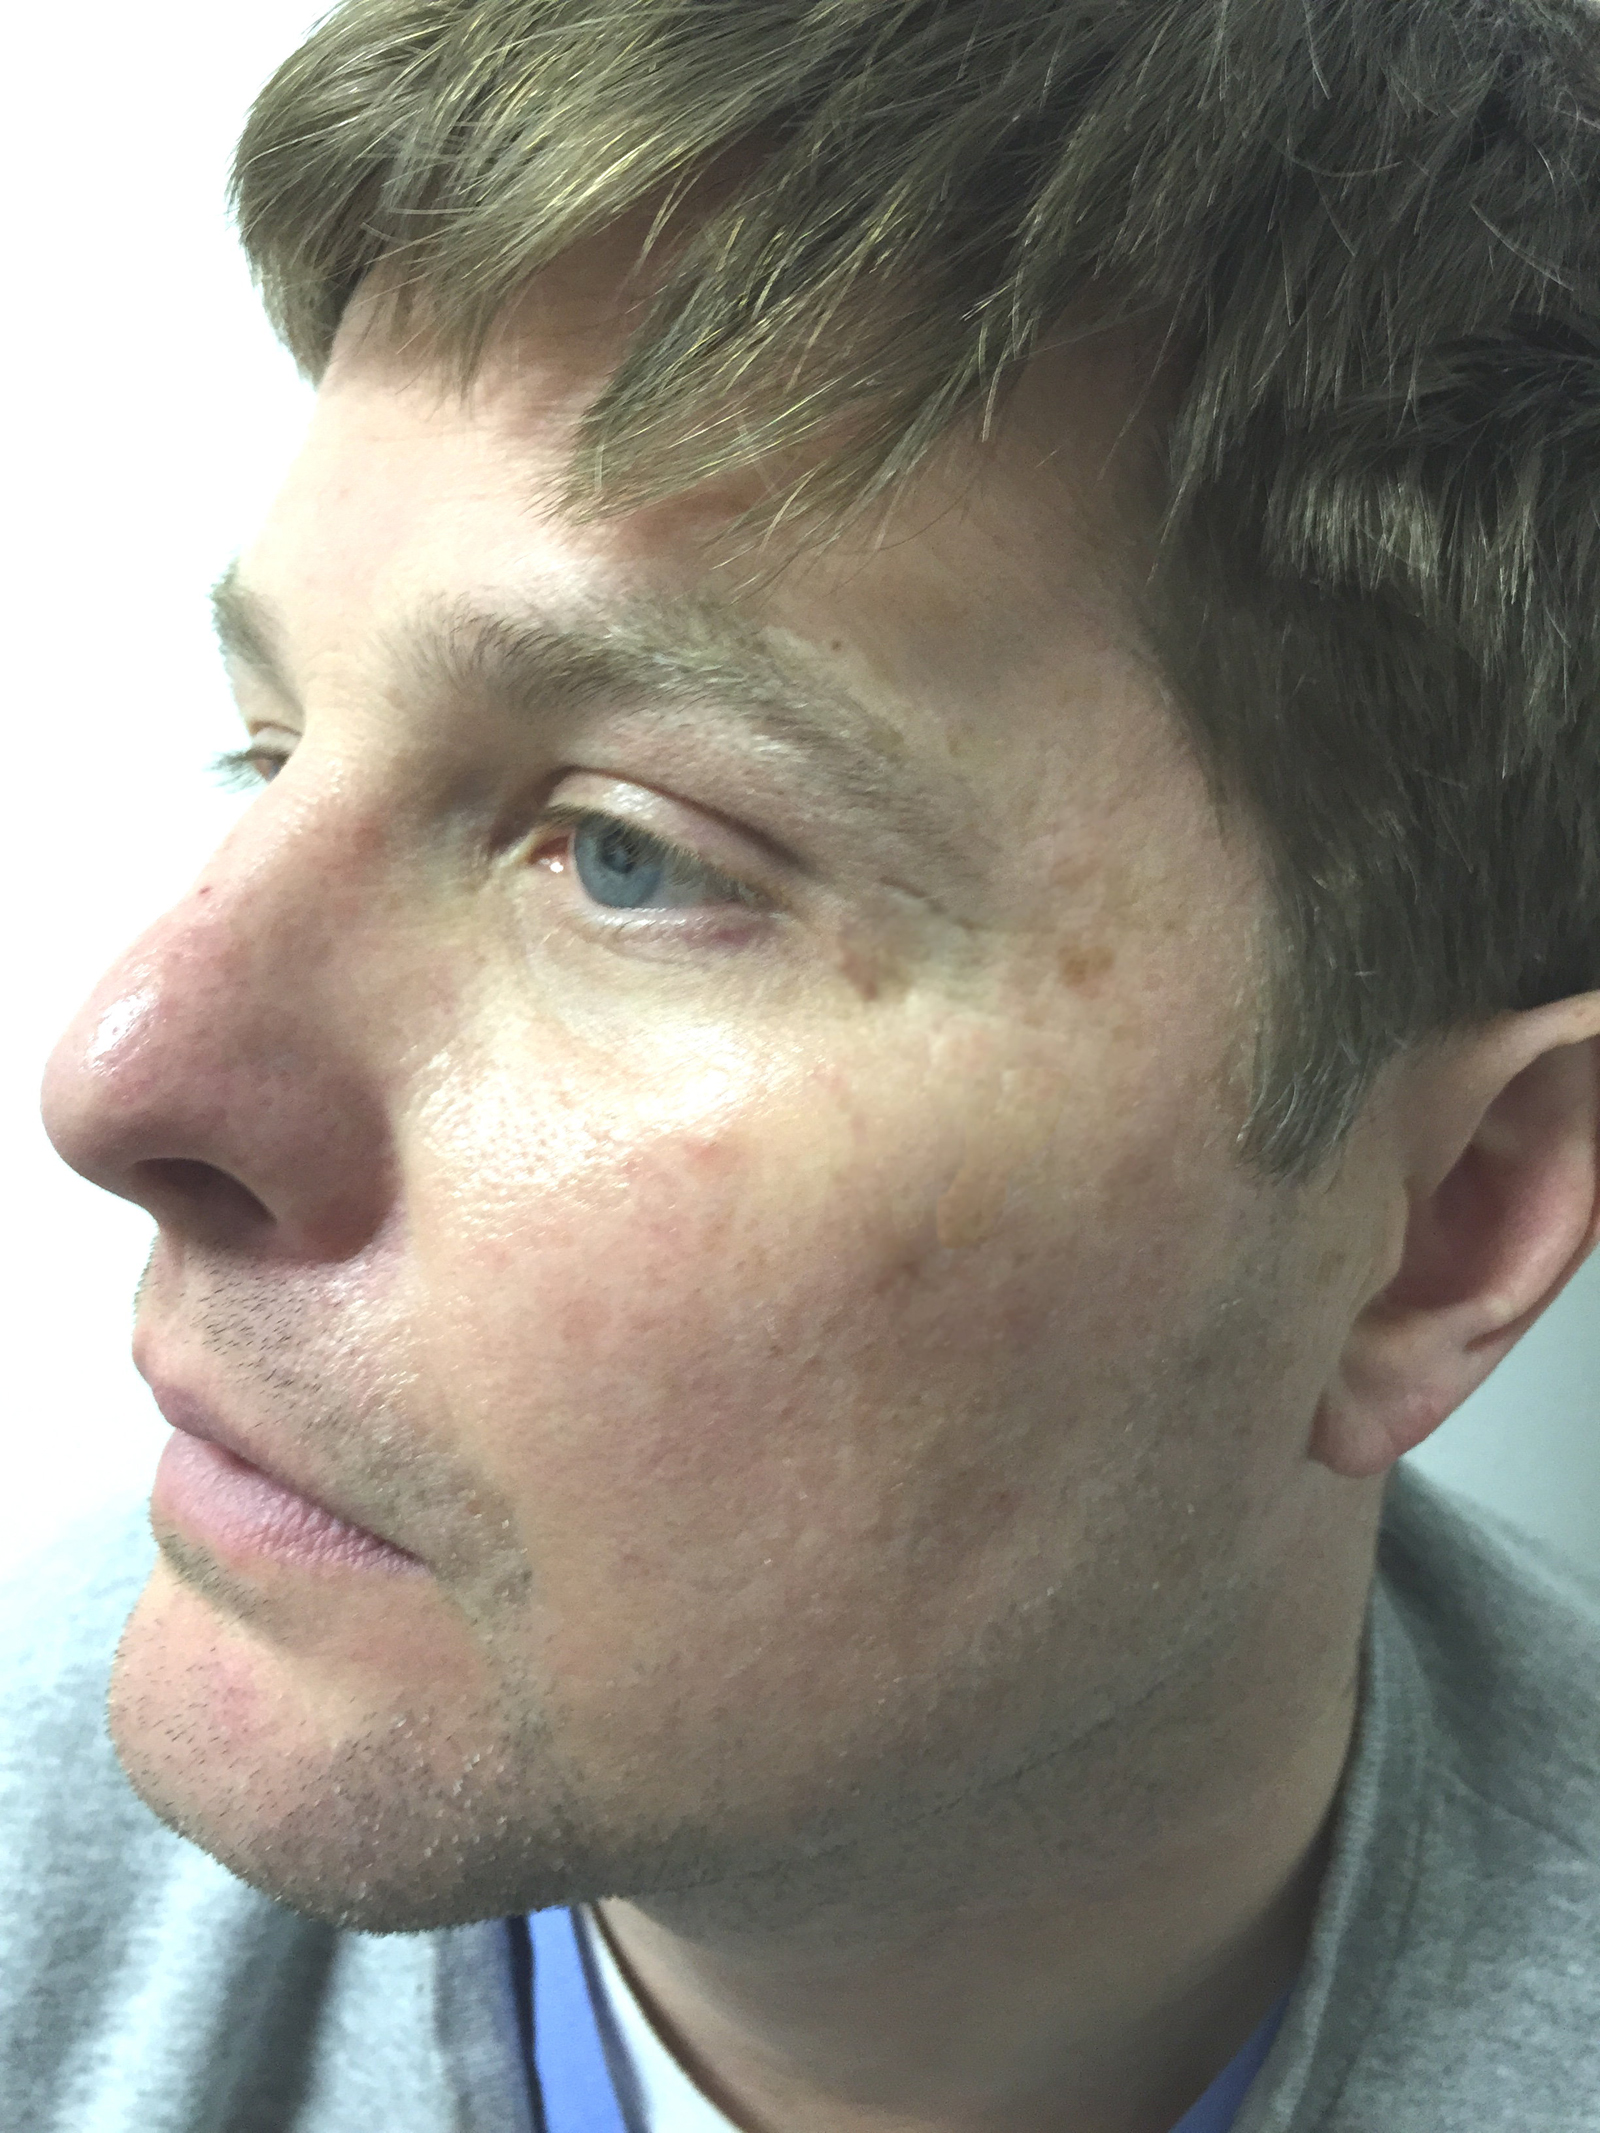 ||||<div style=&quot;text-align: left;&quot;>PA six months after he started to use the skin restore on and off</div>